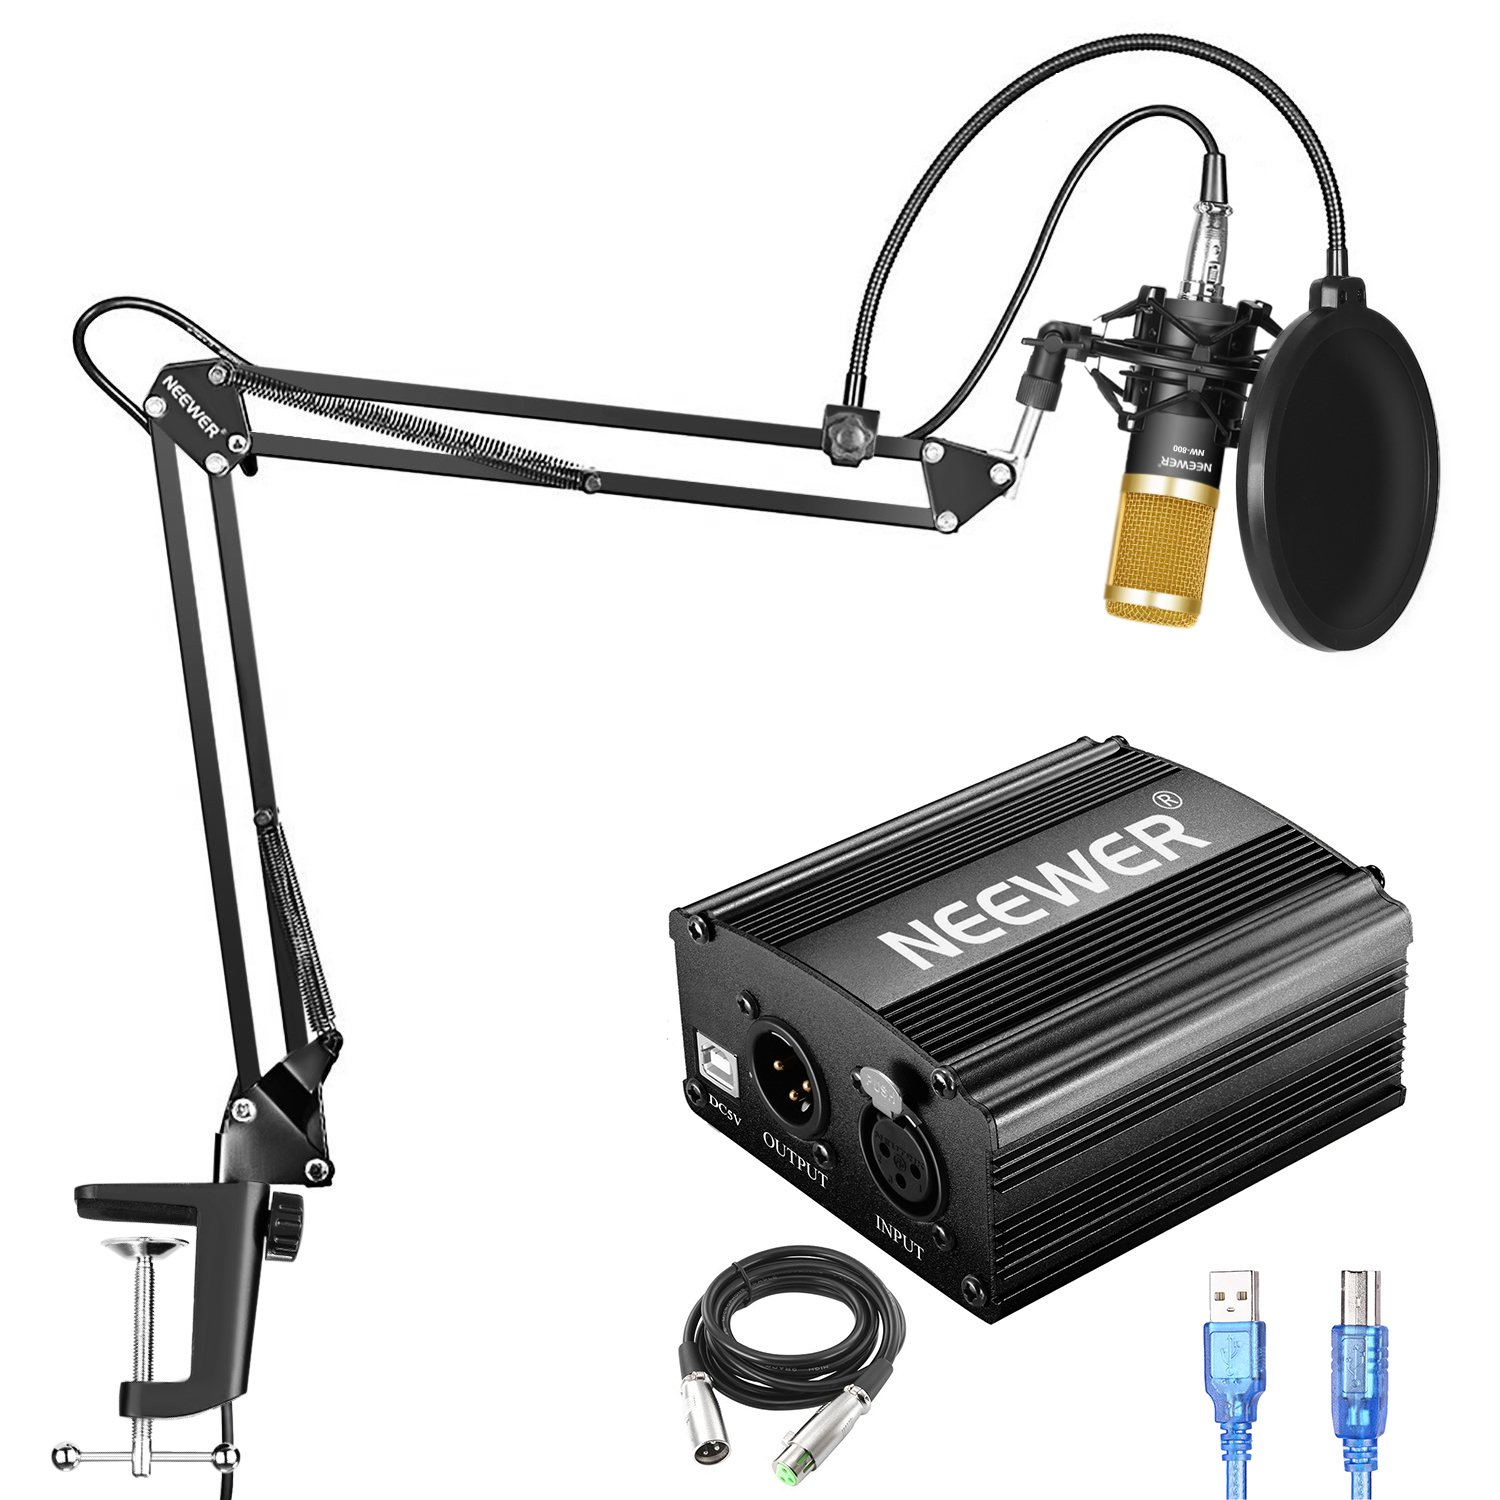 Neewer NW-800 Condenser Microphone Kit with USB 48V Phantom Power Supply, NW-35 Suspension Arm Stand, Shock Mount, Pop Filter for Home Studio Recording Broadcast YouTube Live Periscope(Black and Gold)